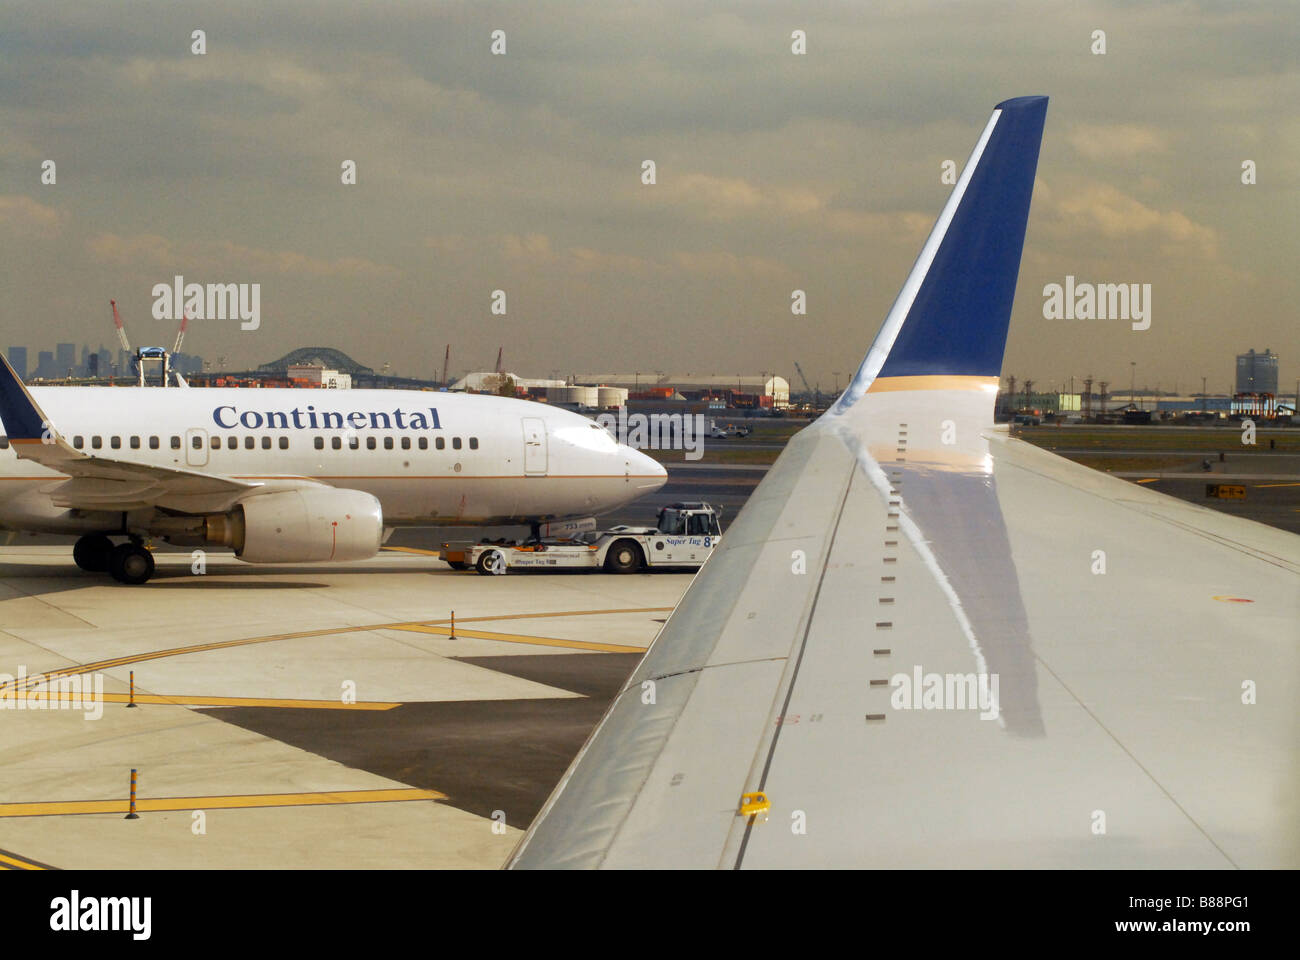 Continental airlines Wing - Stock Image